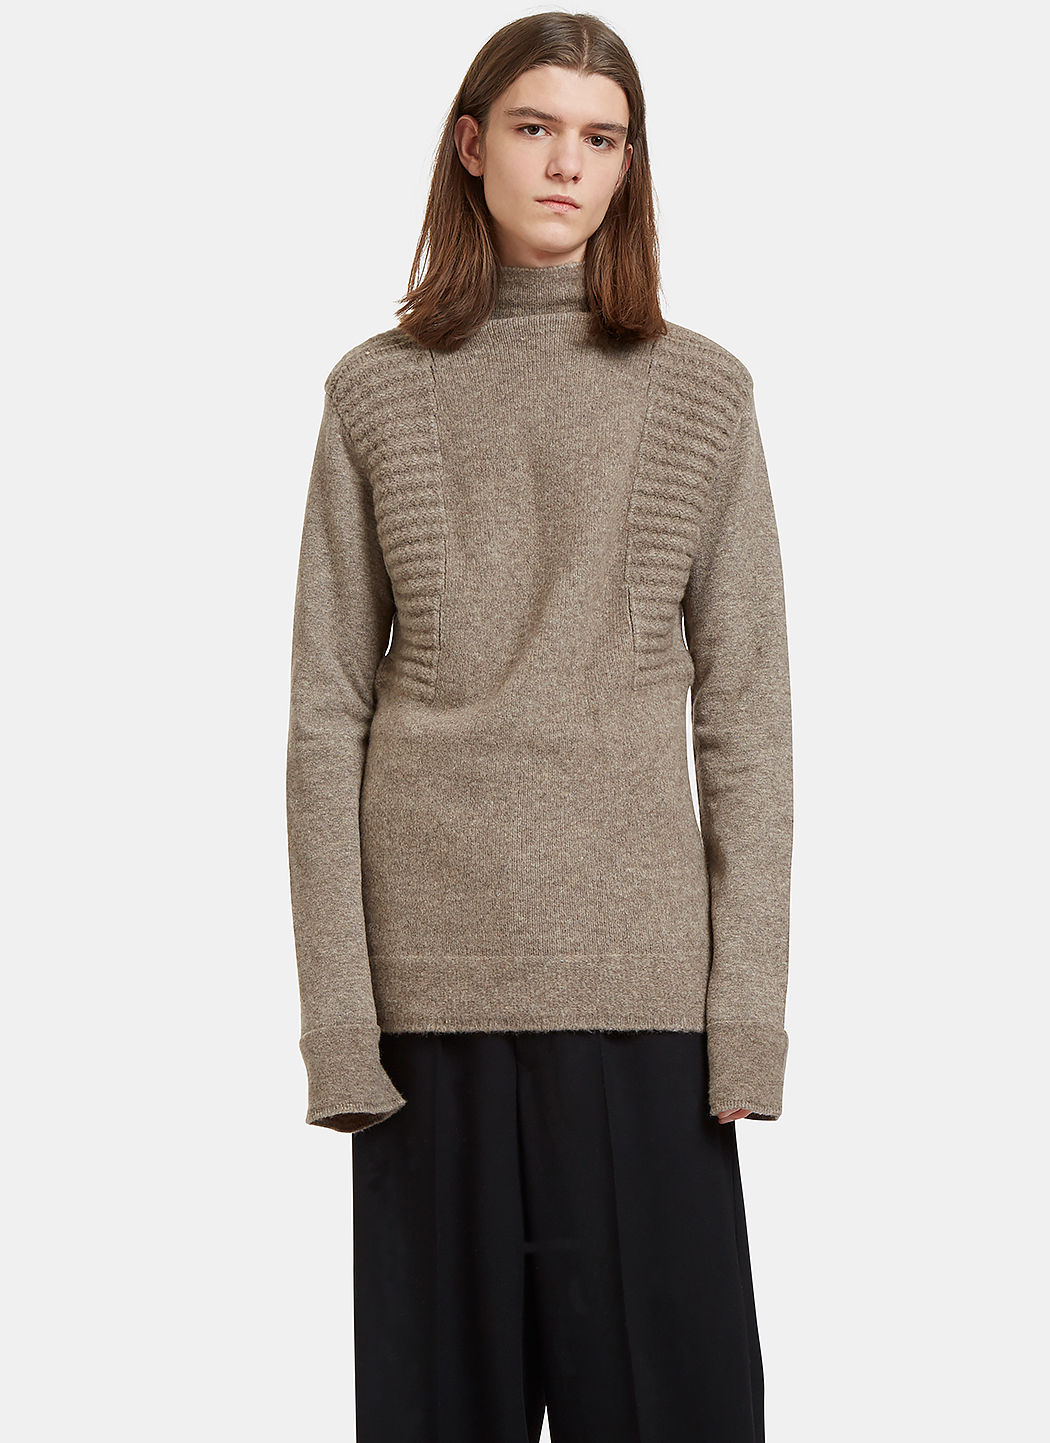 Rick Owens Mens Oversized Roll Neck Contrast Knit Sweater In Beige